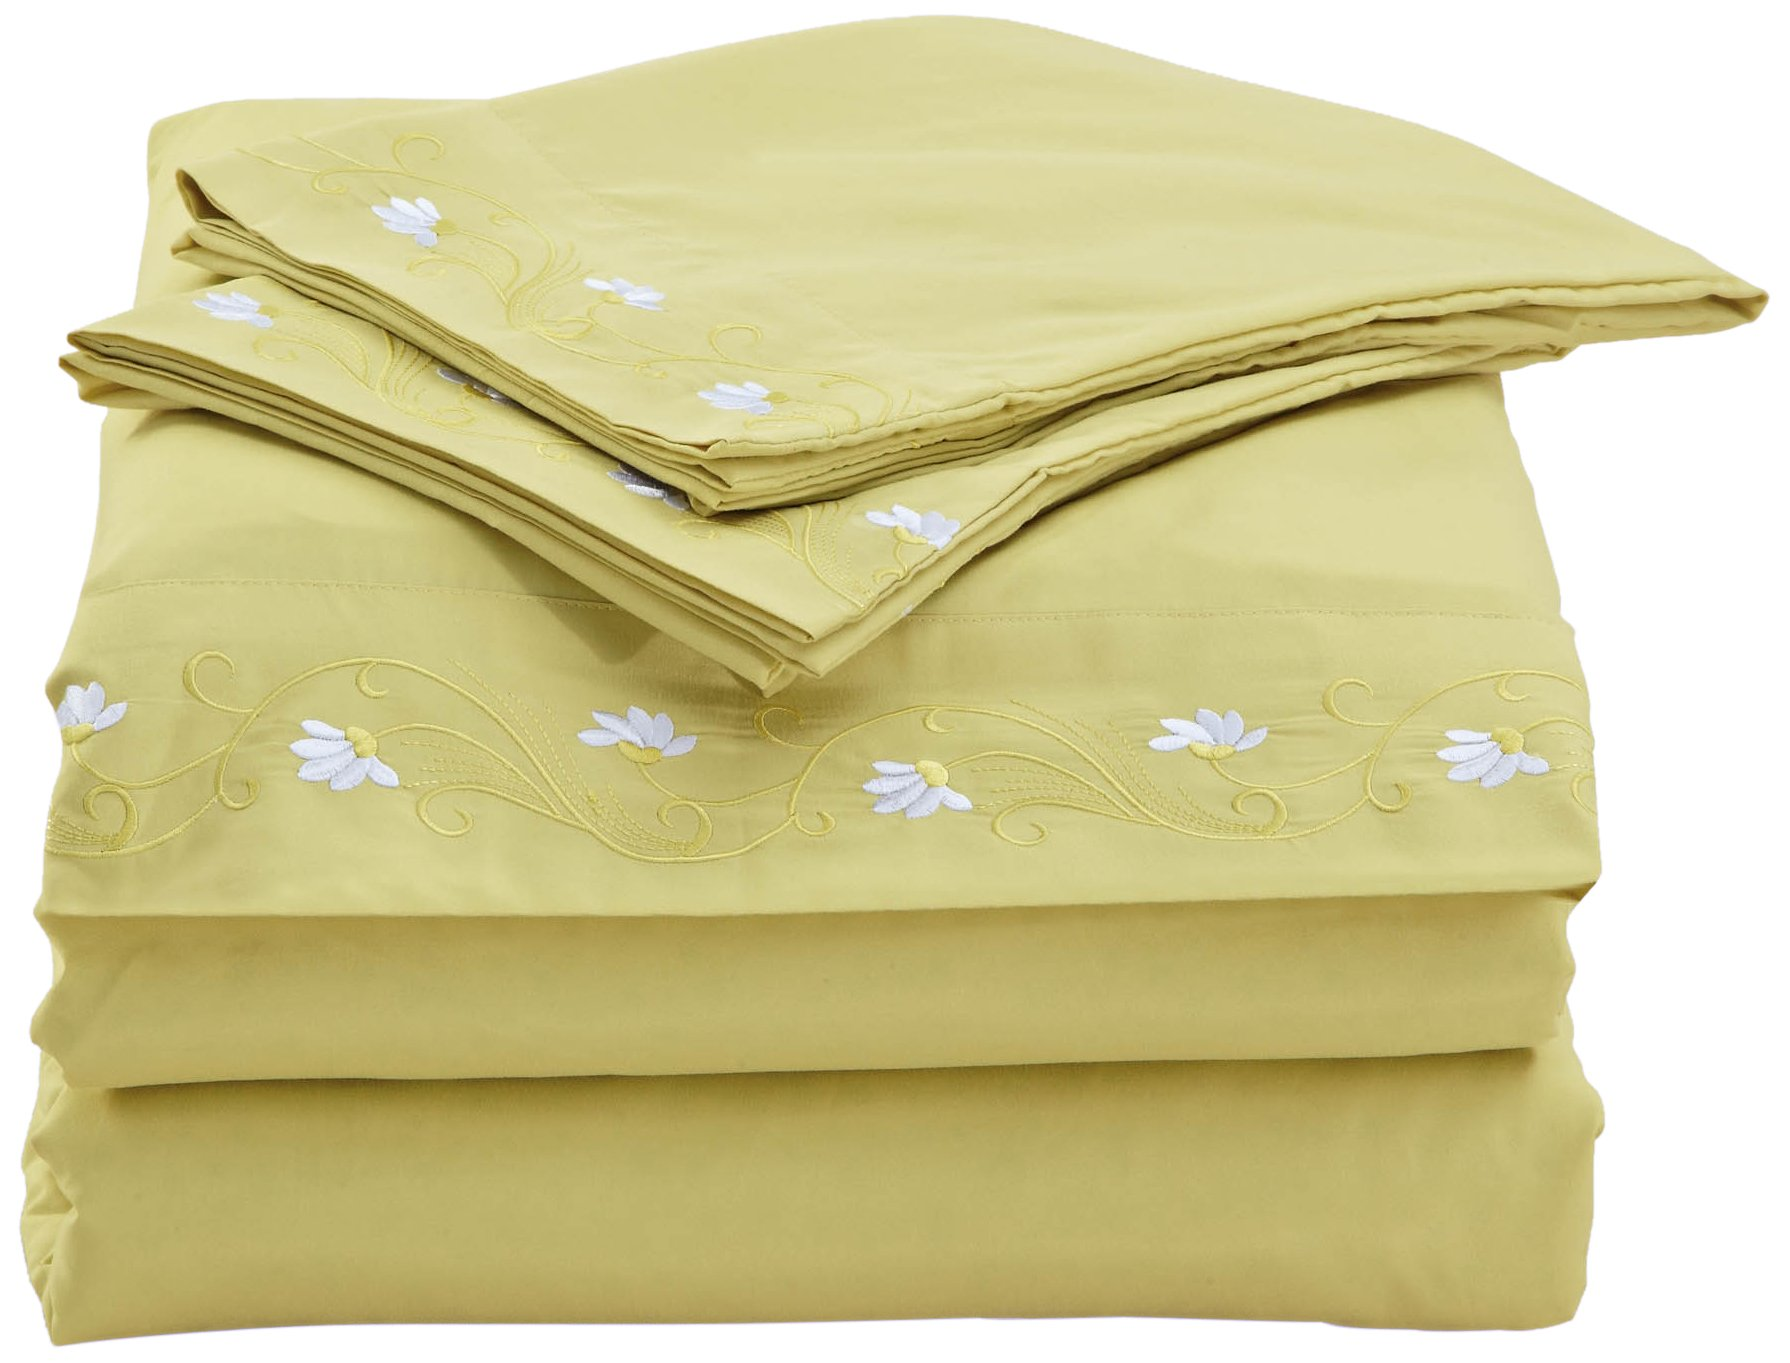 Home Simplicity 90GSM Embroidery Sheet Set, Queen, Chartreuse - Contains one flat sheet, one fitted sheet and two standard pillow cases Fits up to 17 inch deep mattress! Machine washable and tumble dry - sheet-sets, bedroom-sheets-comforters, bedroom - 710WhefDXDL -